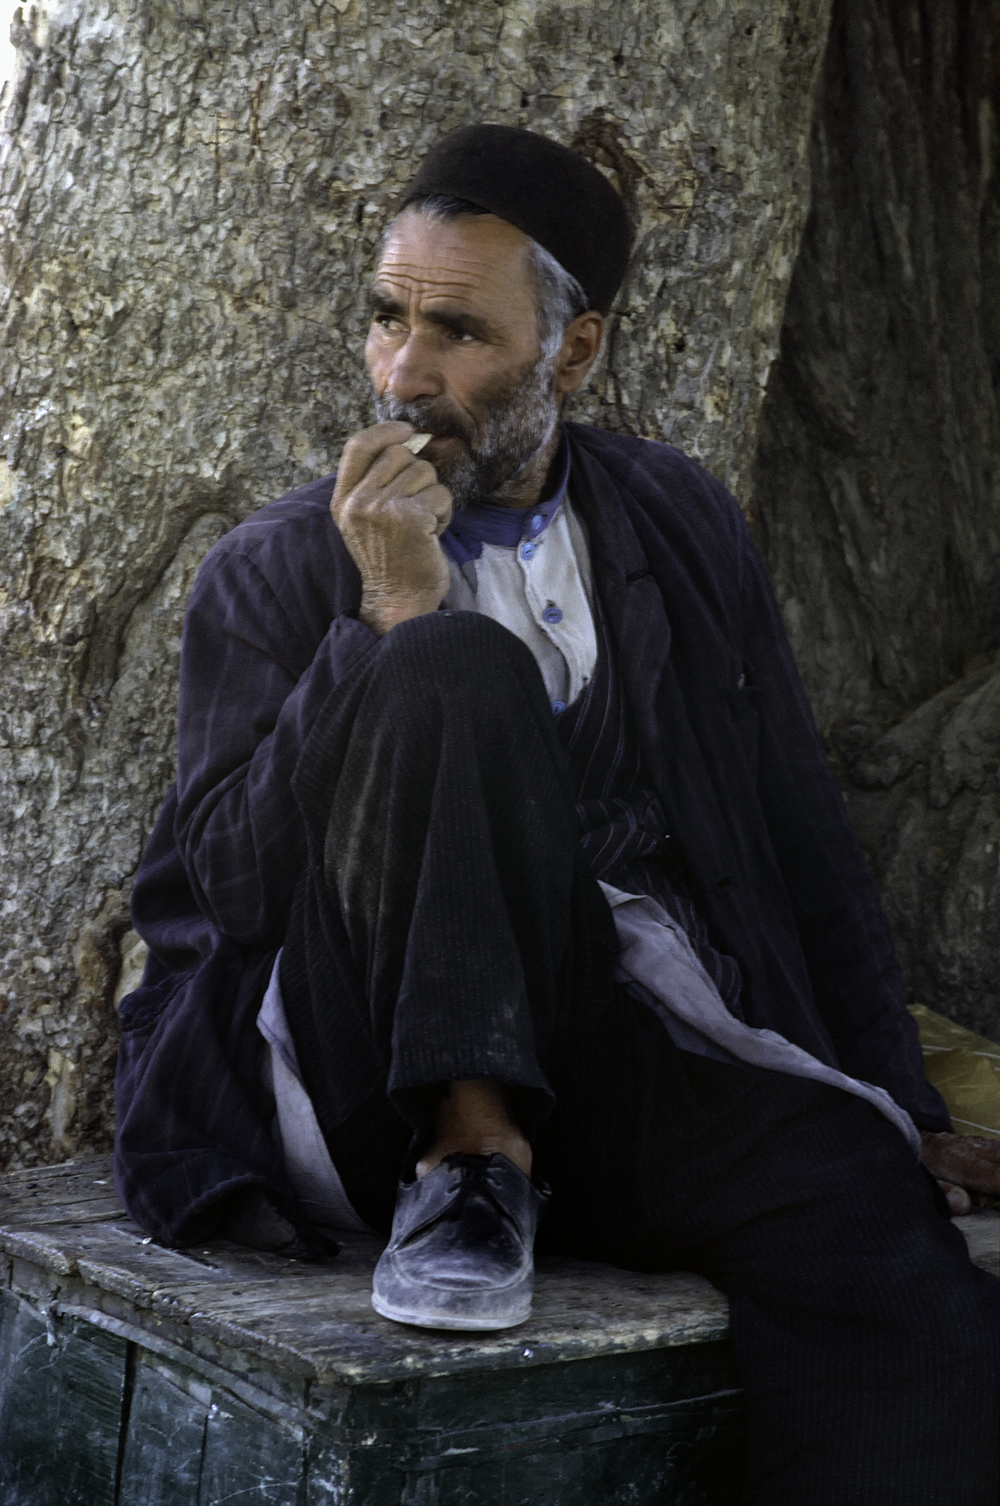 Man Sitting on Box, Iran 1967